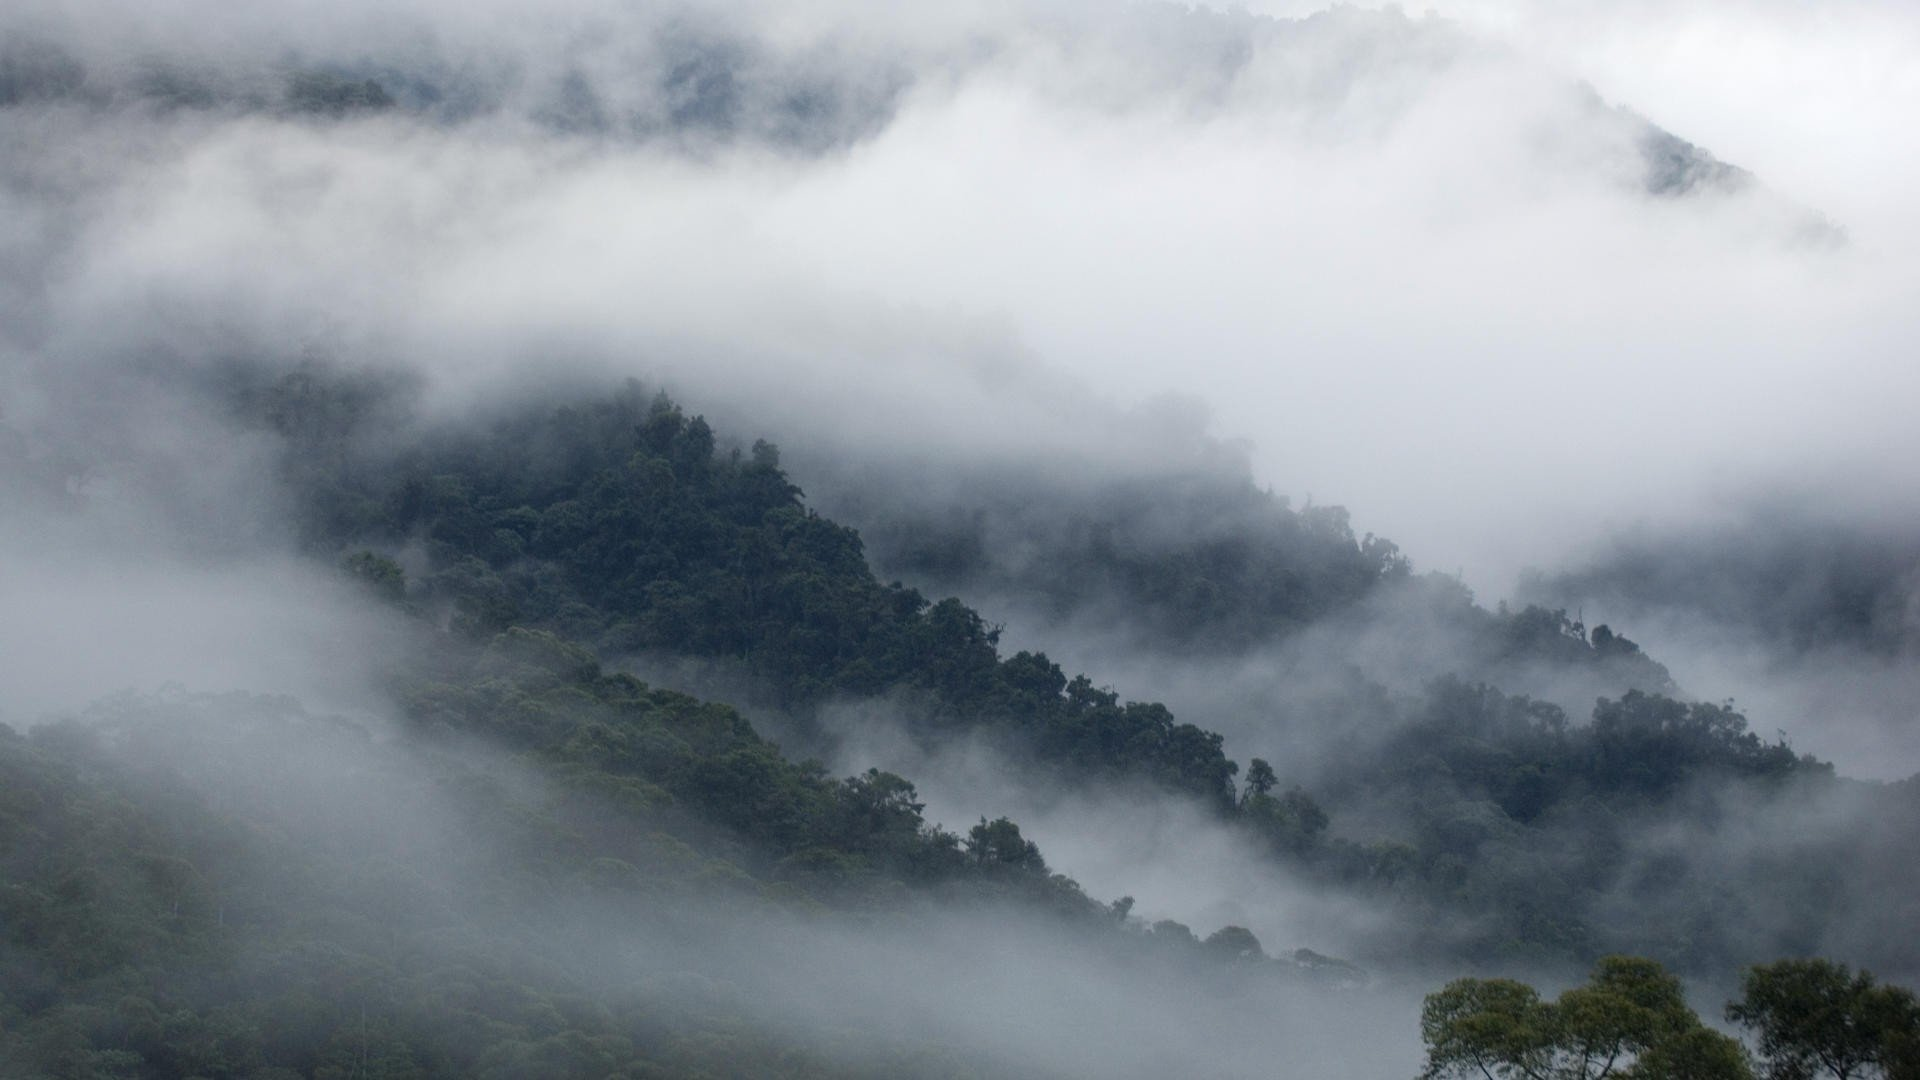 Smoky Mountains Iphone Wallpaper Fog Full Hd Wallpaper And Background Image 1920x1080